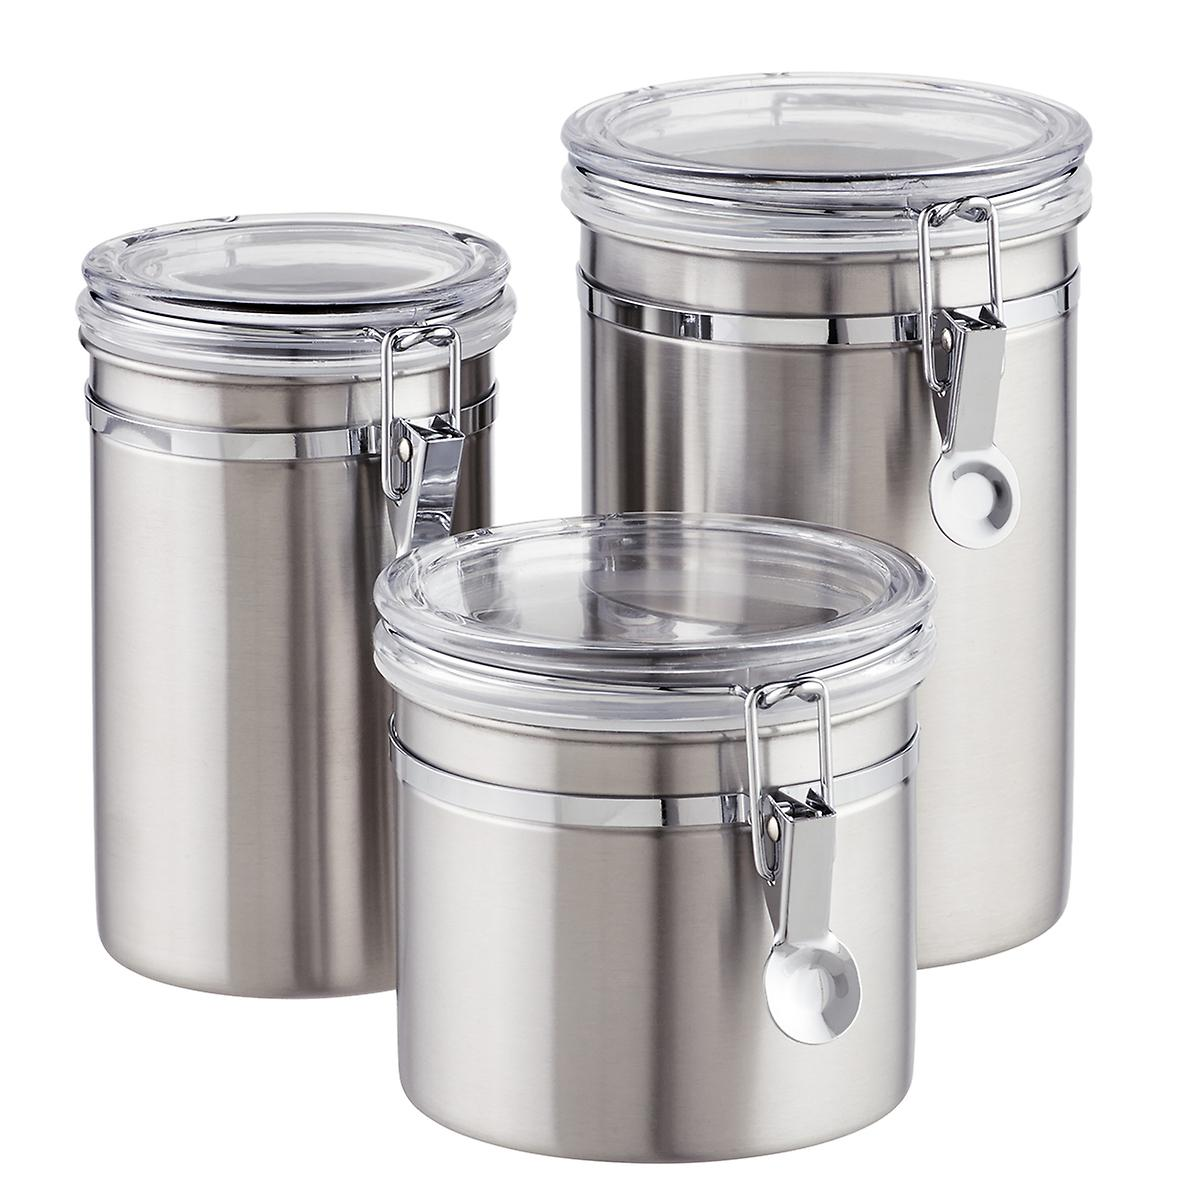 kitchen canisters stainless steel stainless steel canisters brushed stainless steel canisters the container store 5598